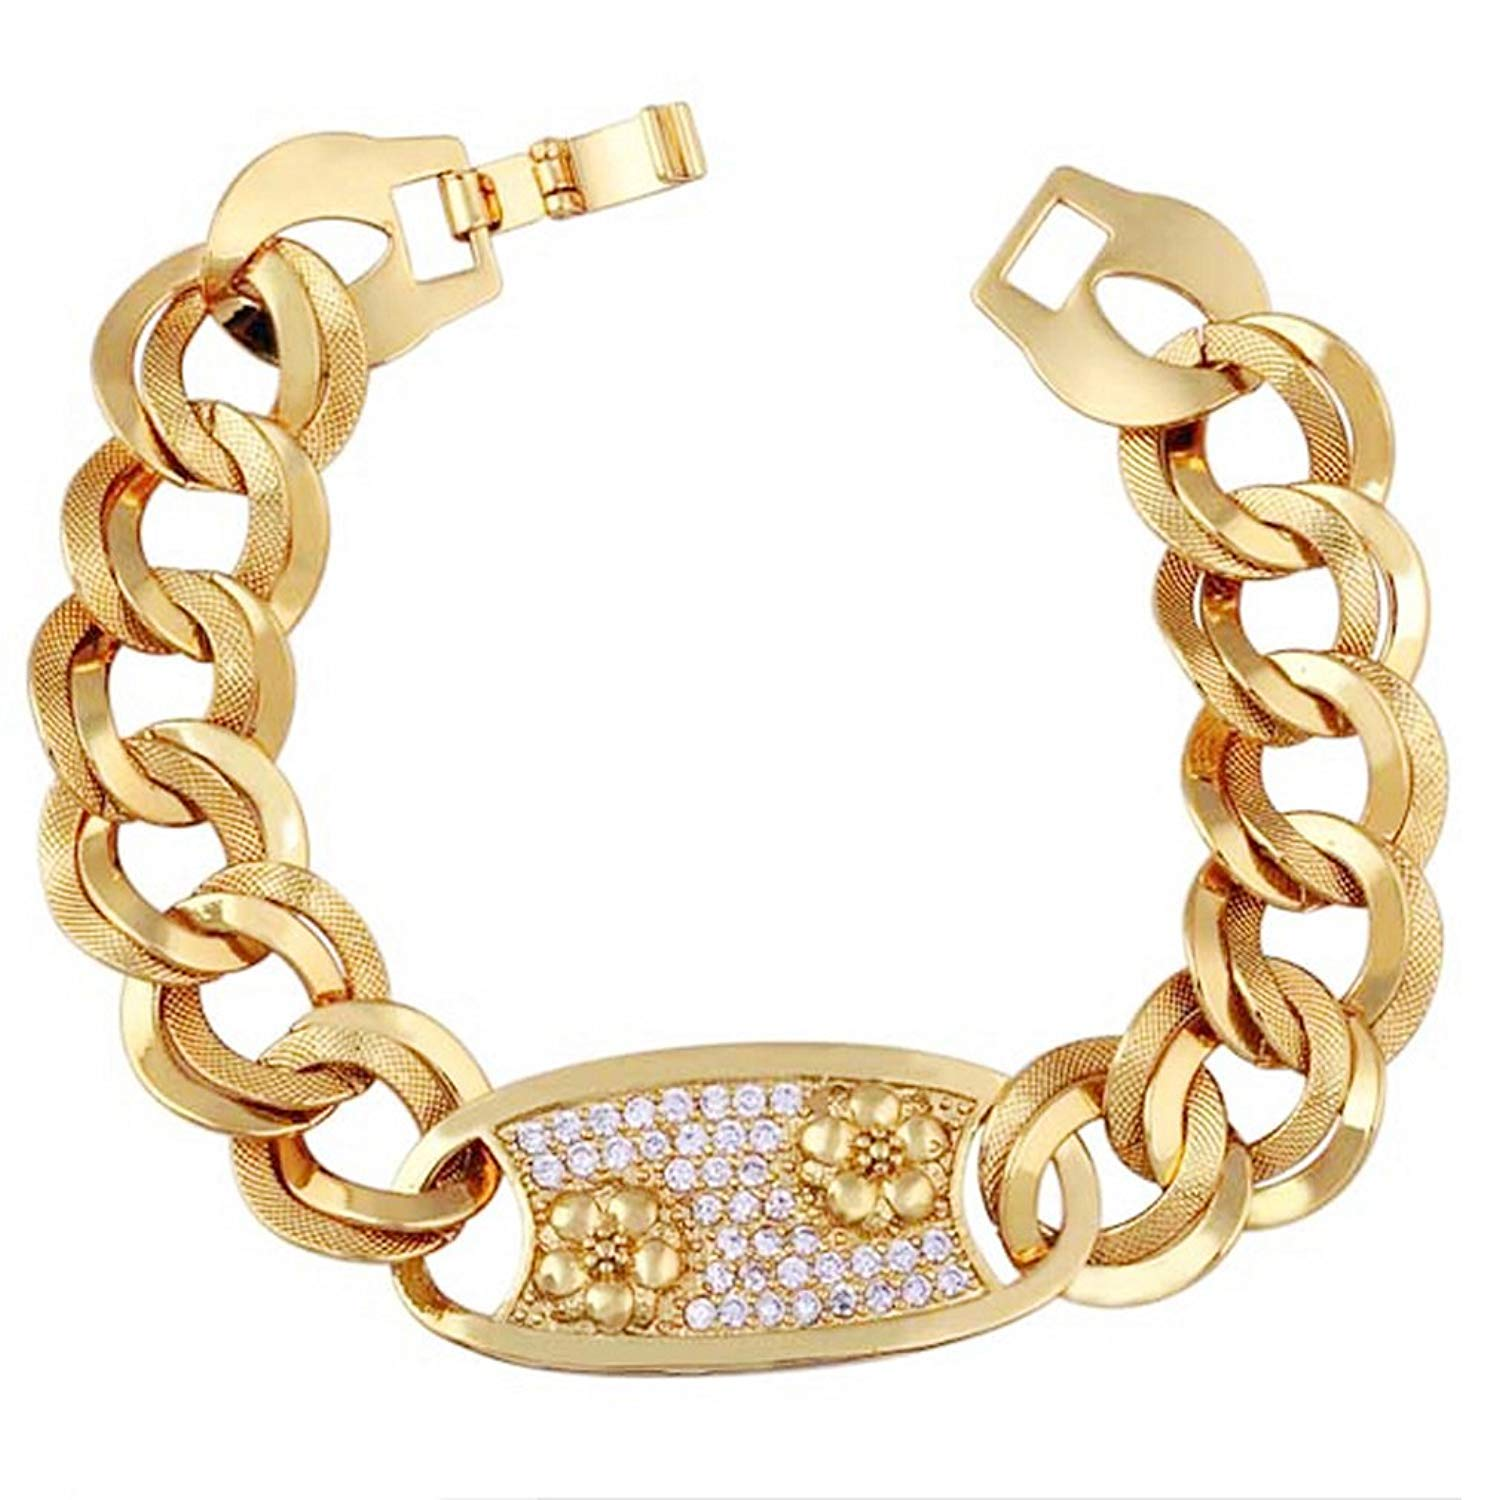 DVANIS 18K Unique Golden Plated Women Flower Zircon Bracelet Jewelry Gift